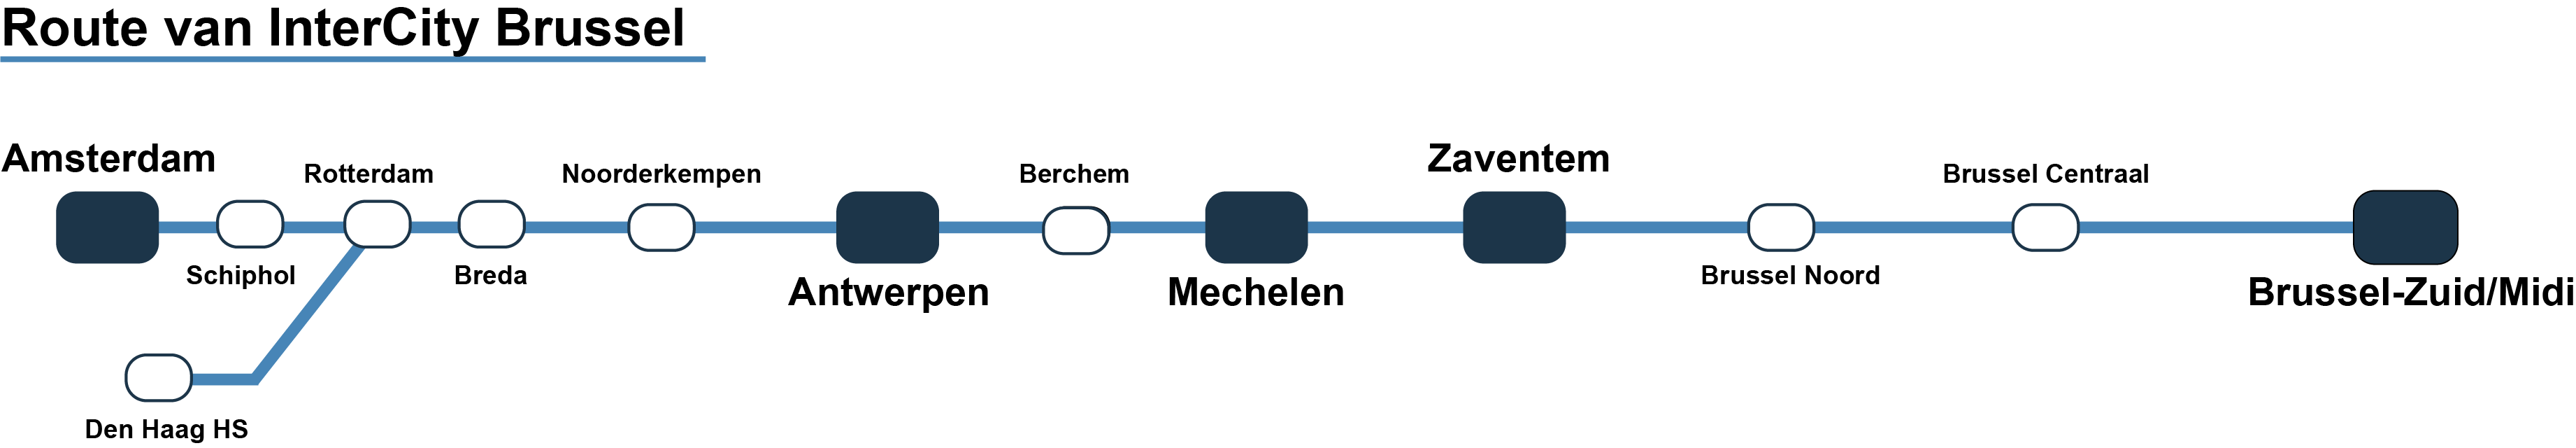 Route InterCity Brussel naar Mechelen